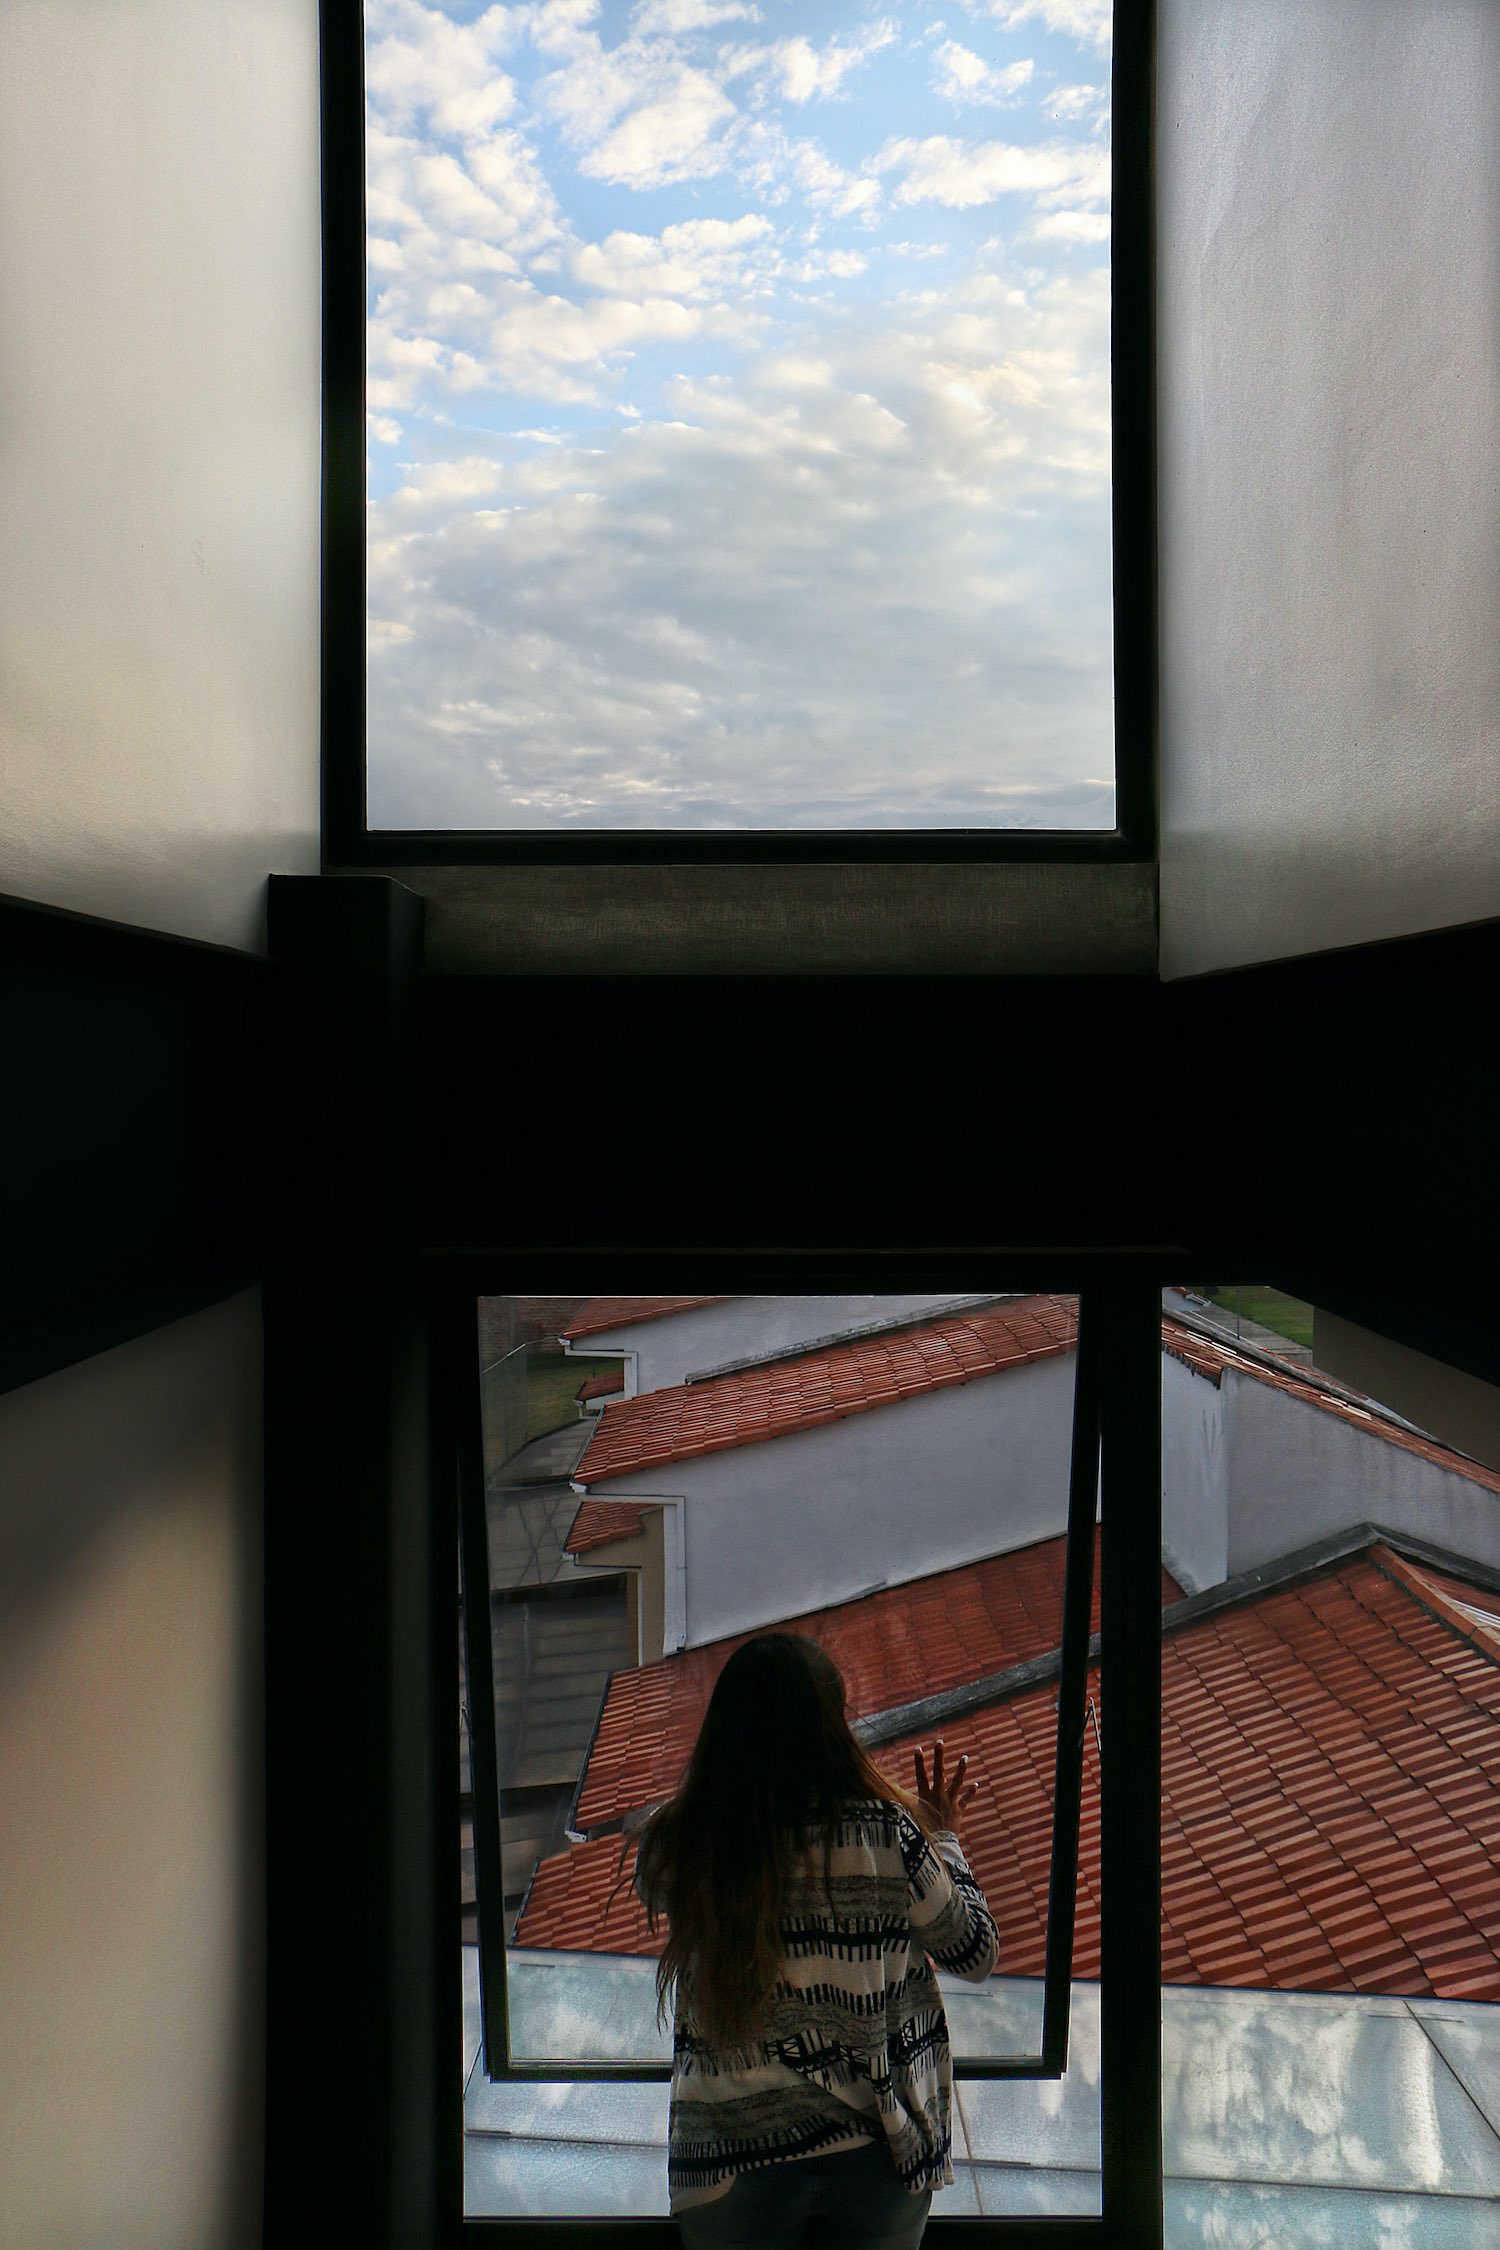 a girl opening the glass window